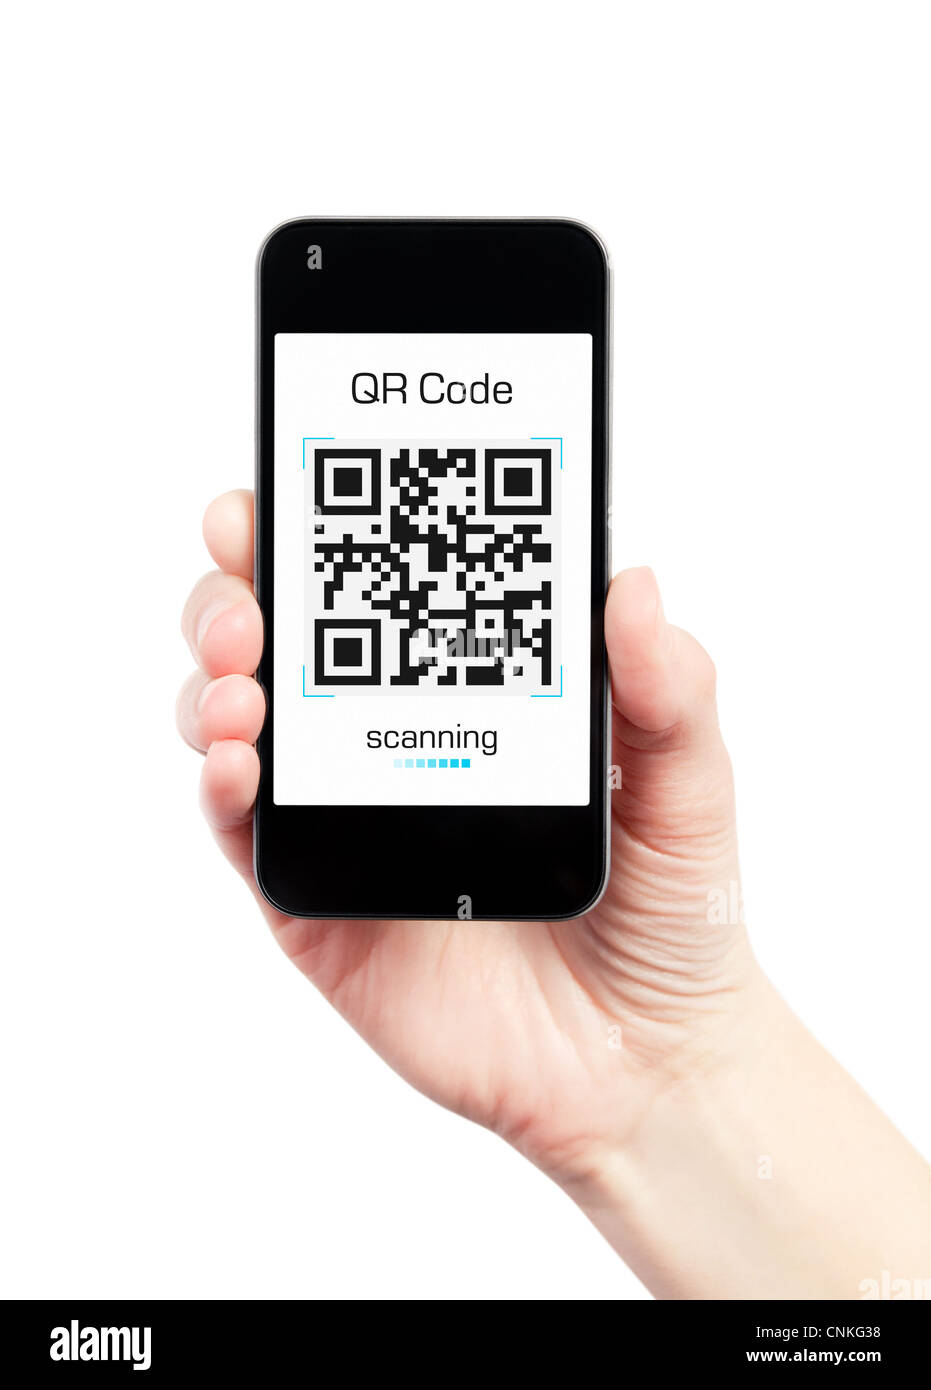 Hand holding mobile smart phone with QR code scanner on the